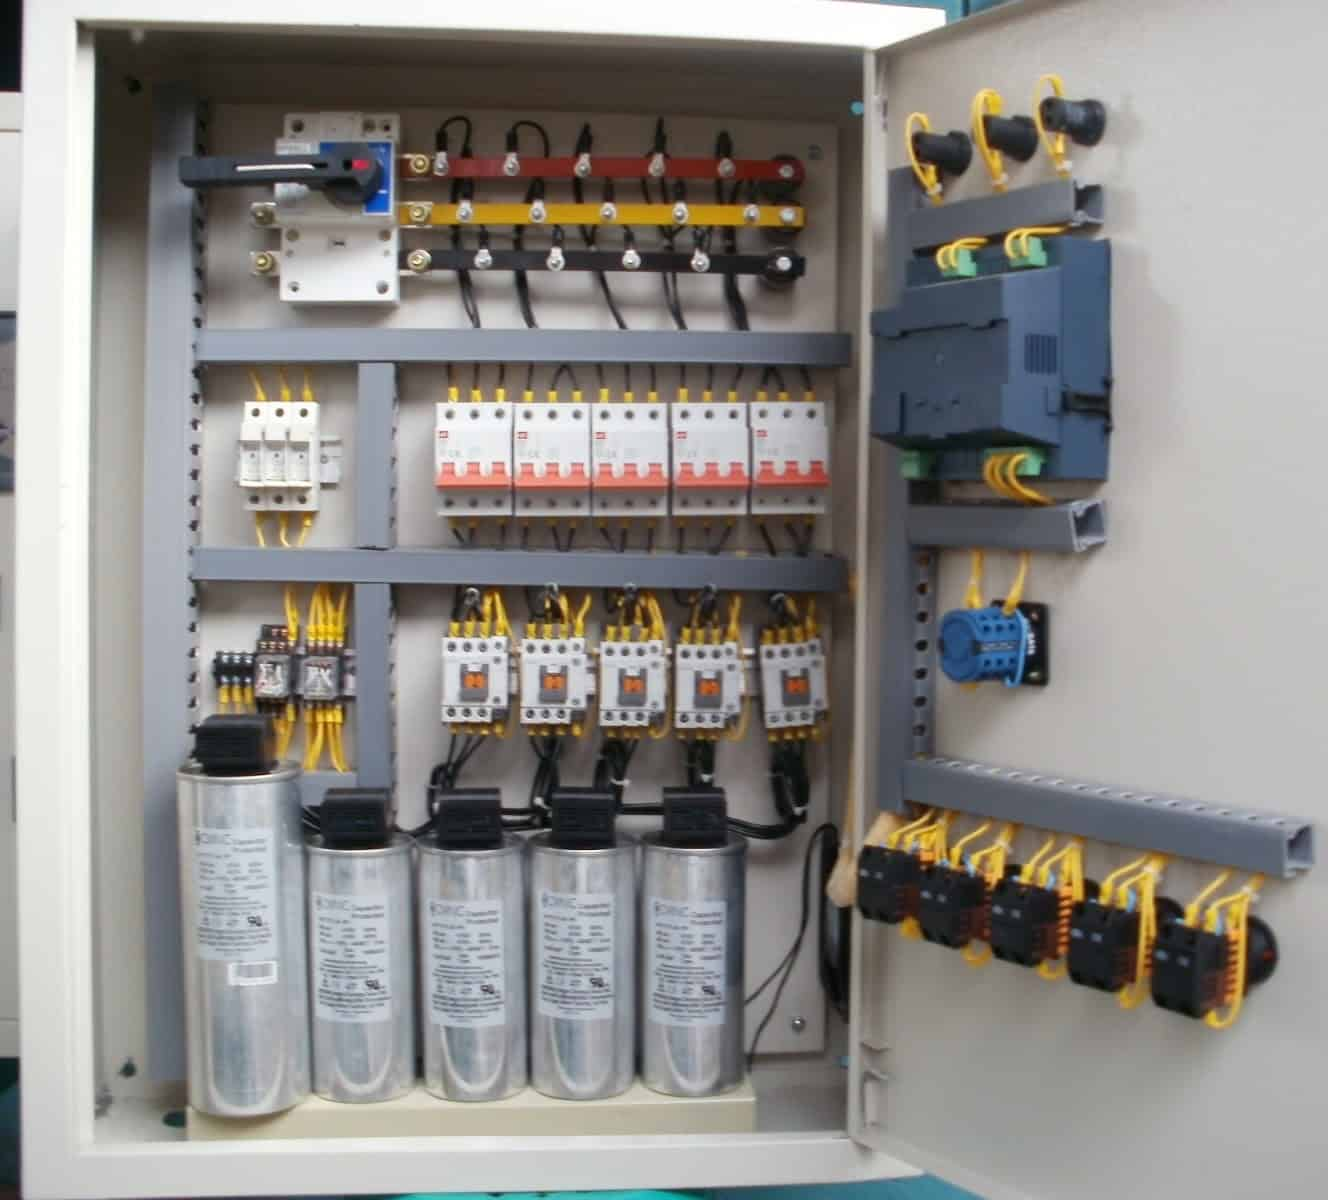 Capacitor Bank in Industries Wiring and Power Distribution